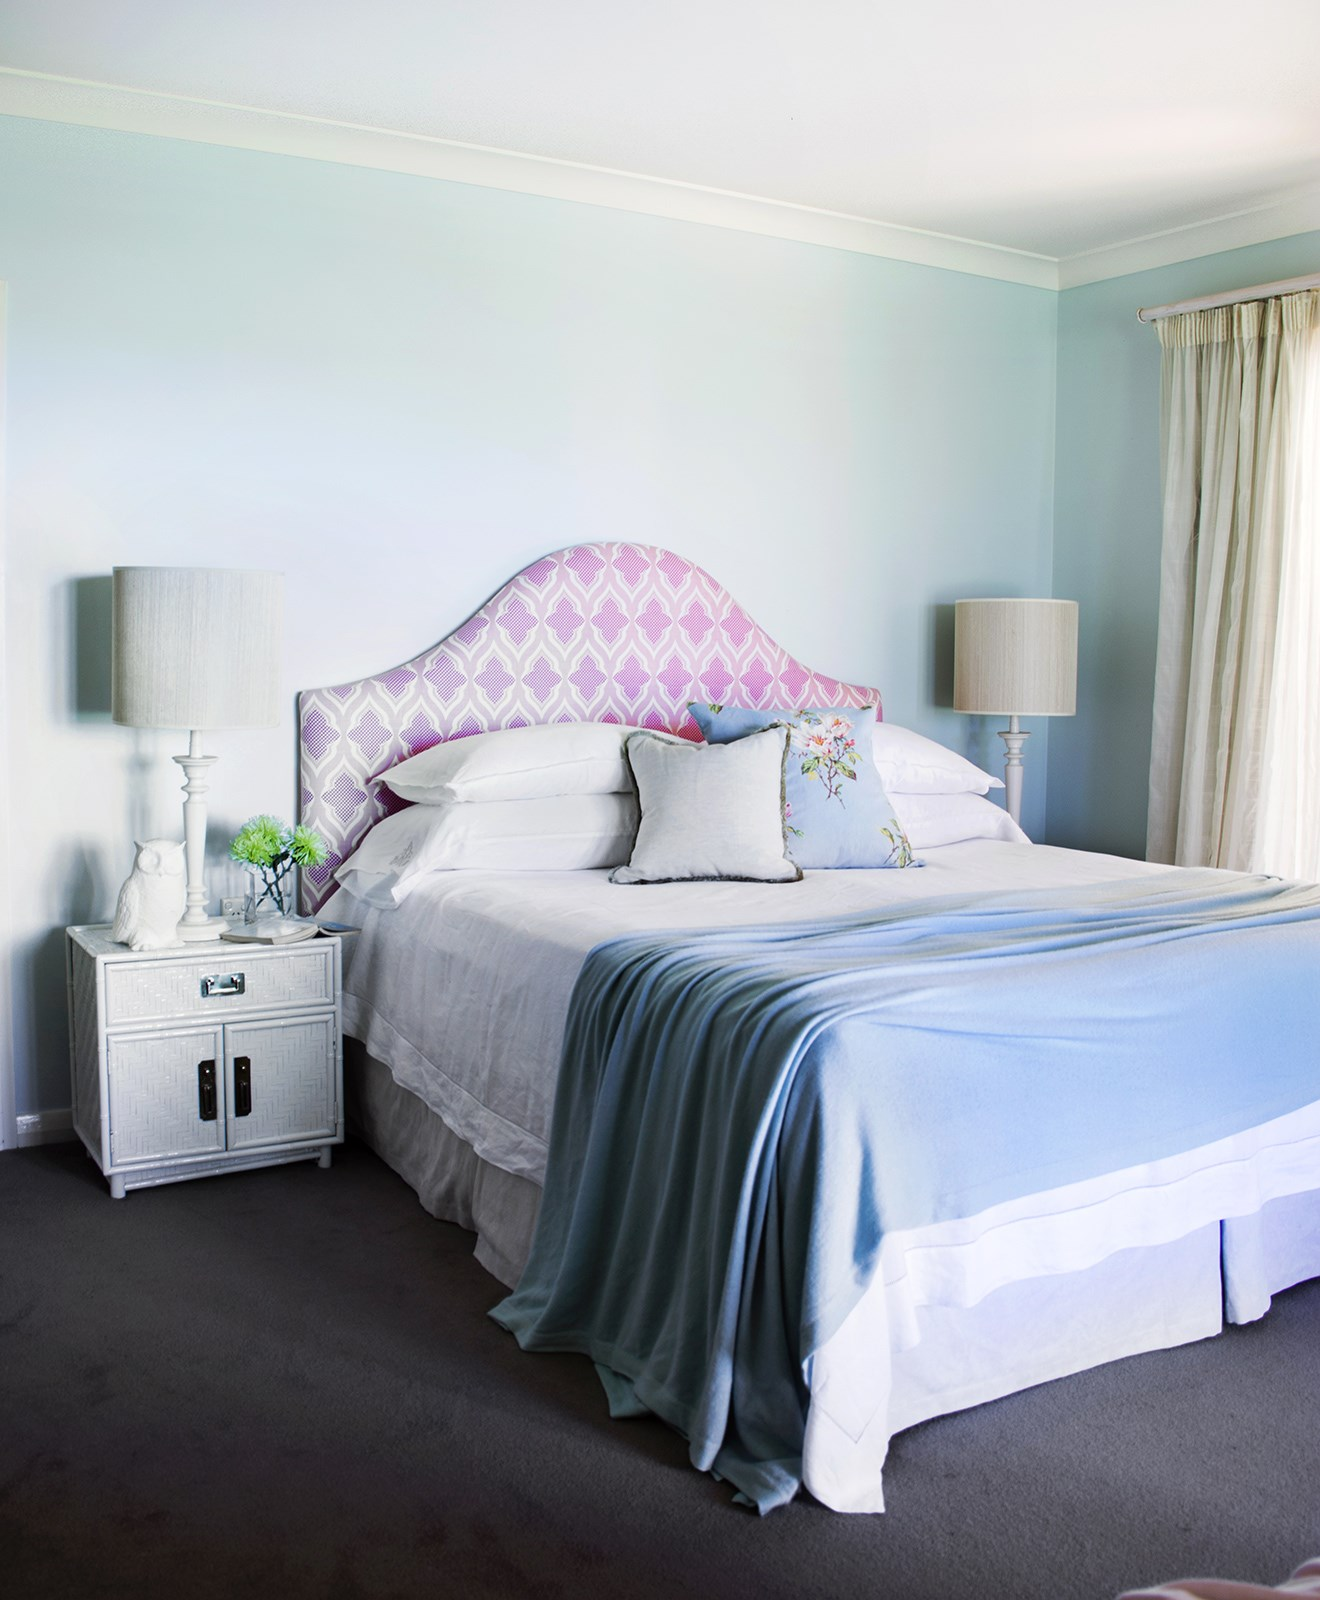 "Pastel hues including a bedhead upholstered in [Christopher Farr Cloth](http://www.christopherfarrcloth.com/?utm_campaign=supplier/|target=""_blank"") 'Moorish' fabric create a dreamy vibe in the bedroom of this [charming country homestead](http://www.homestolove.com.au/gallery-charles-and-angelas-country-homestead-1818